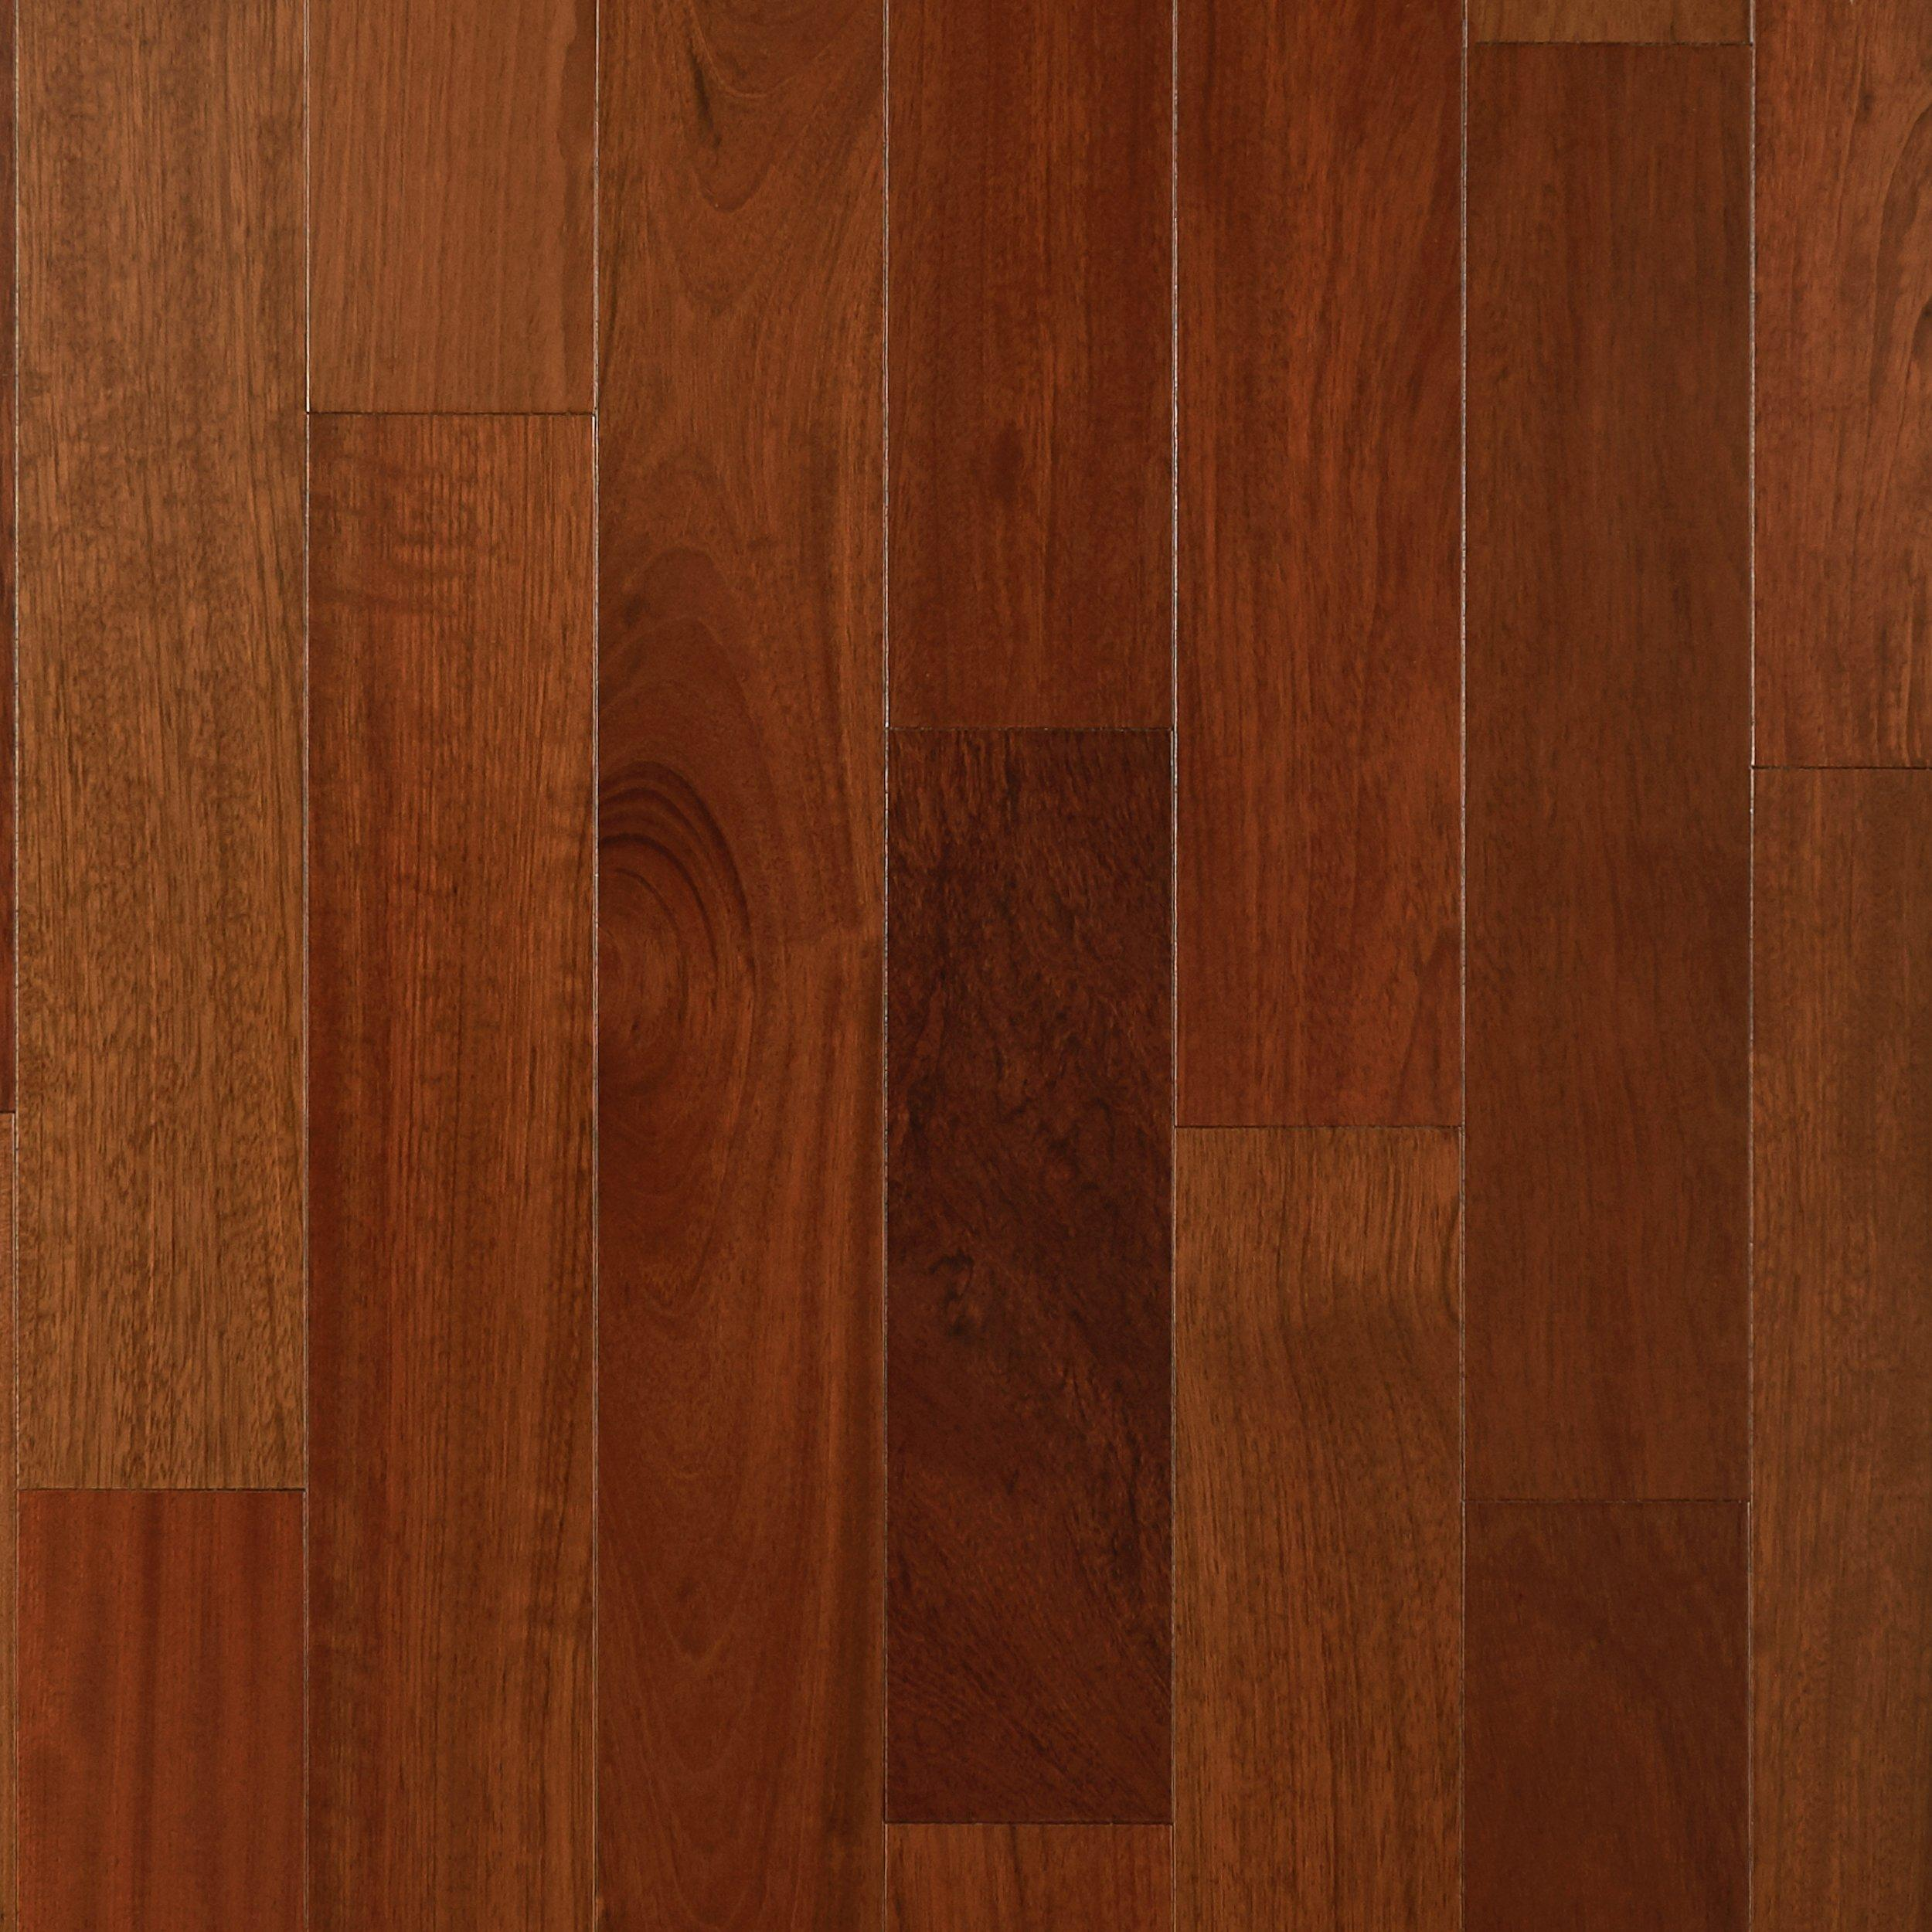 Lovely Alea Brazilian Cherry Smooth Engineered Hardwood